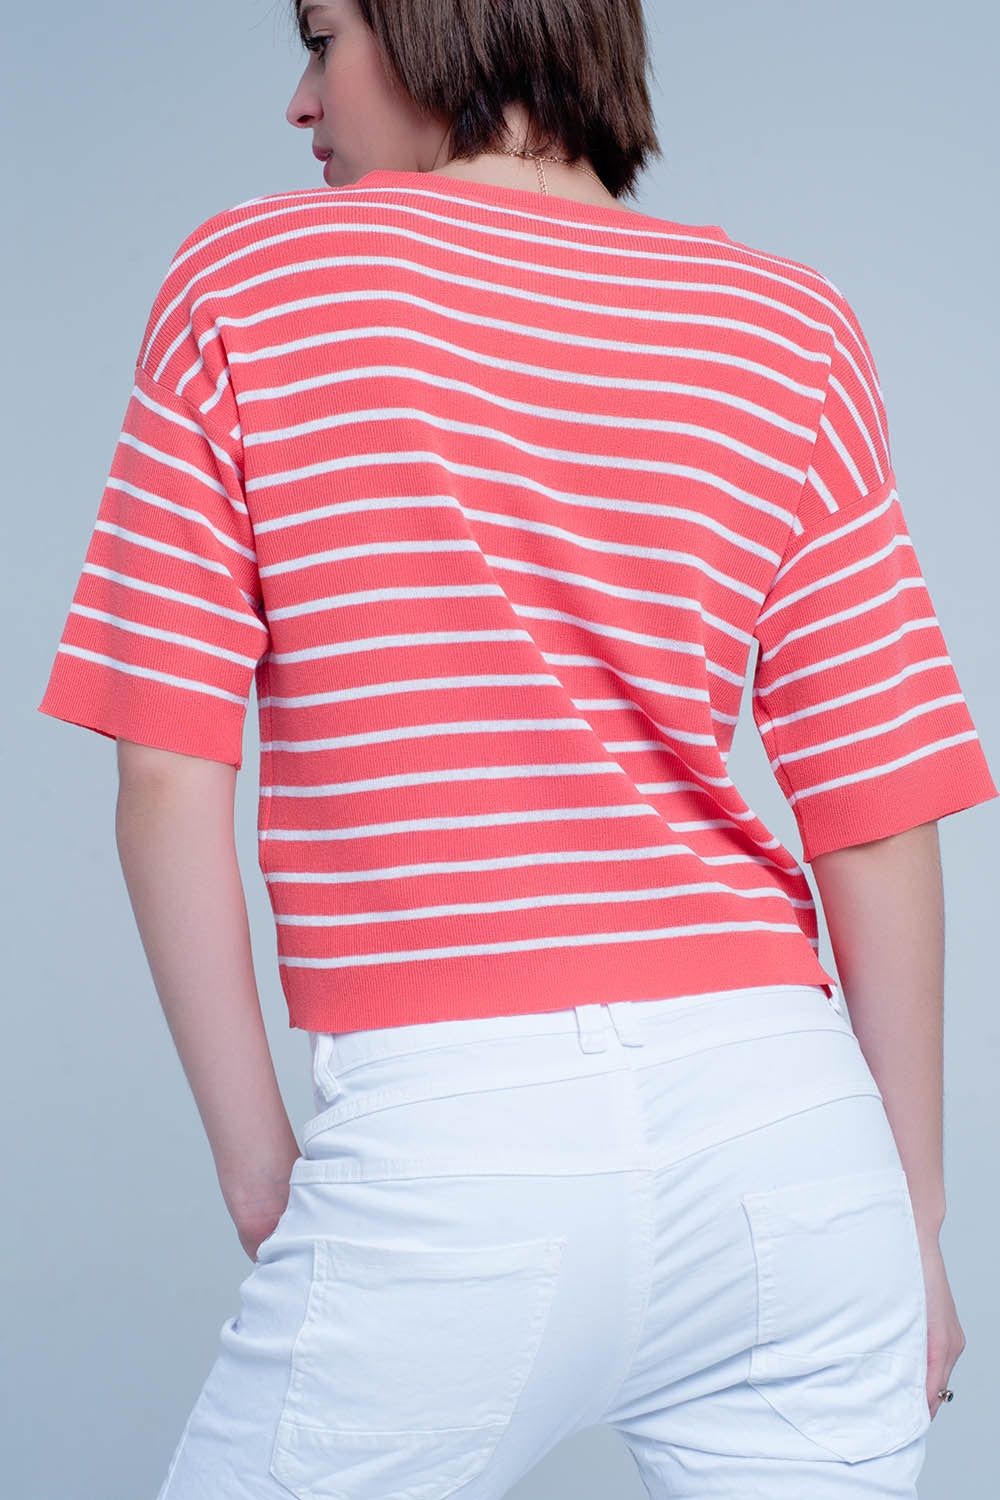 Coral Striped Short Sleeve V-Neck Sweater-Women - Apparel - Sweaters - Pull Over-Product Details Airy v-neck jumper of high quality viscose with a little stretch. The pullover has slightly oversized shoulders and sleeves on 1/3 length.-Keyomi-Sook